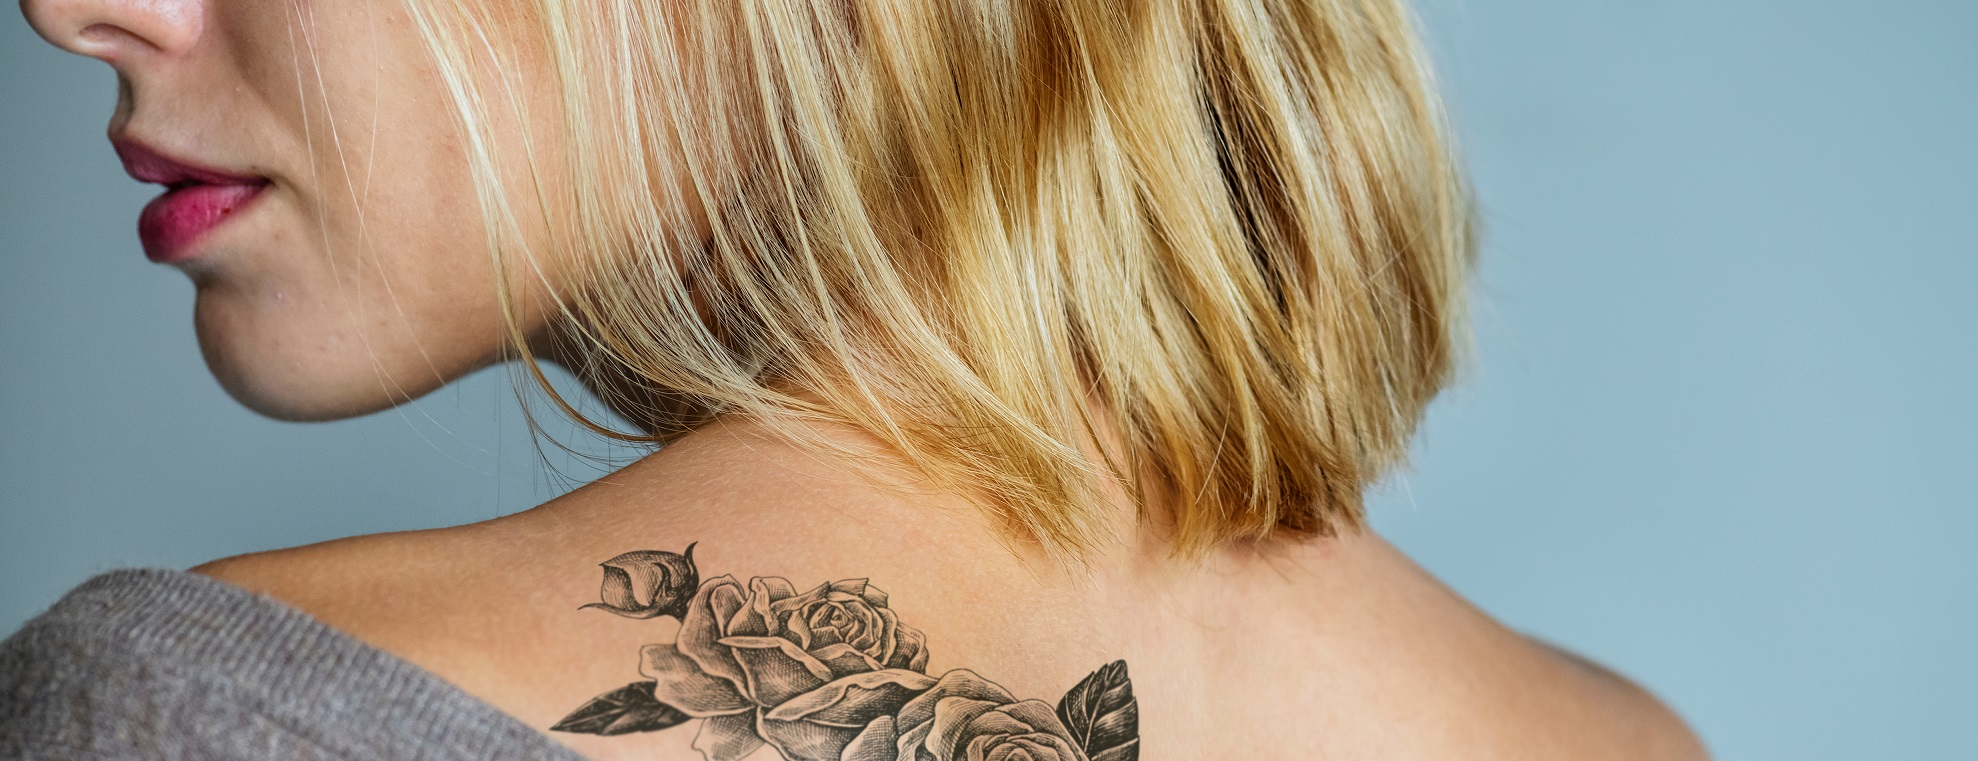 How Long Does It Take for a Tattoo to Heal? Hacks to Reduce Your